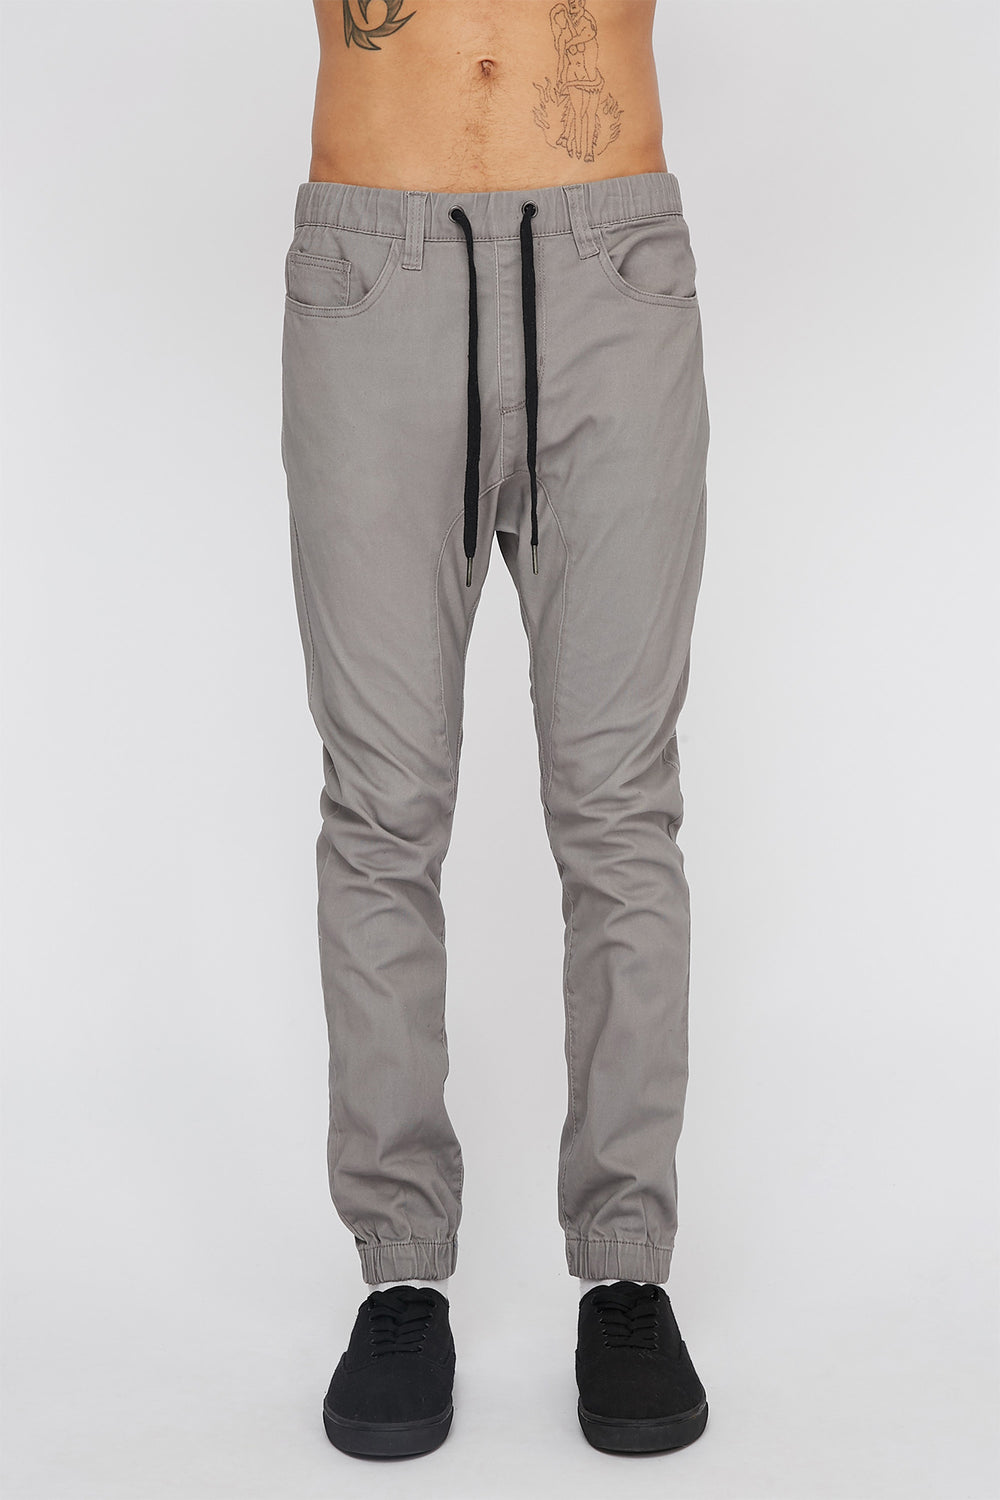 Zoo York Mens 5-Pocket Jogger Heather Grey